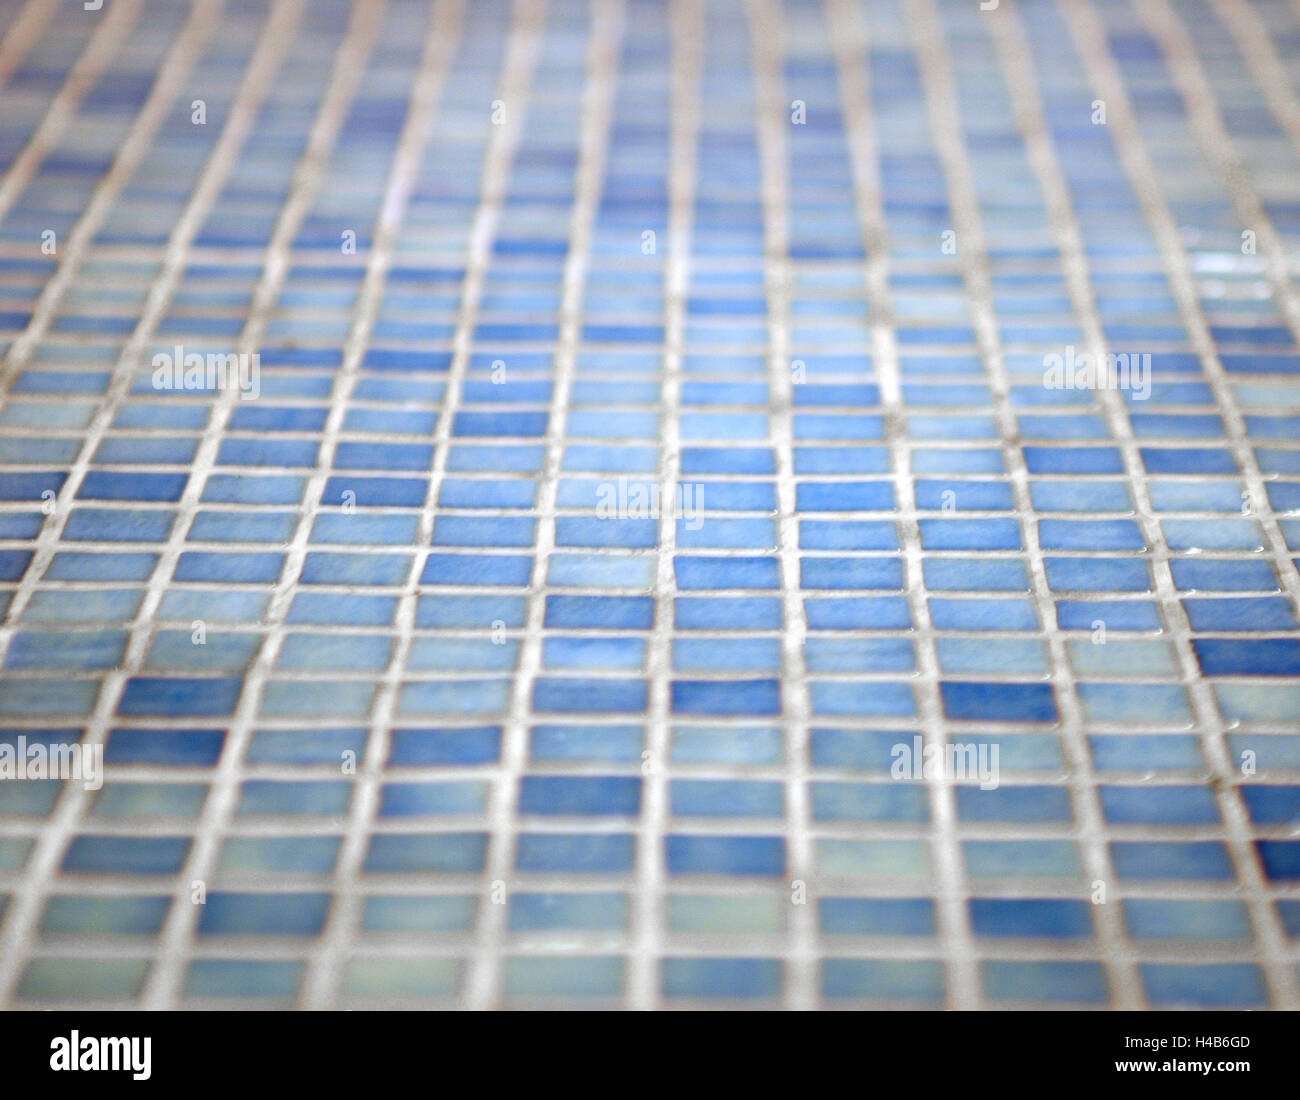 Mosaic floor blue floor mosaic floor tiles tiled mosaic mosaic floor blue floor mosaic floor tiles tiled mosaic bathroom bath bathroom floor turquoise light blue pattern squares mosaic tiles blue dailygadgetfo Image collections